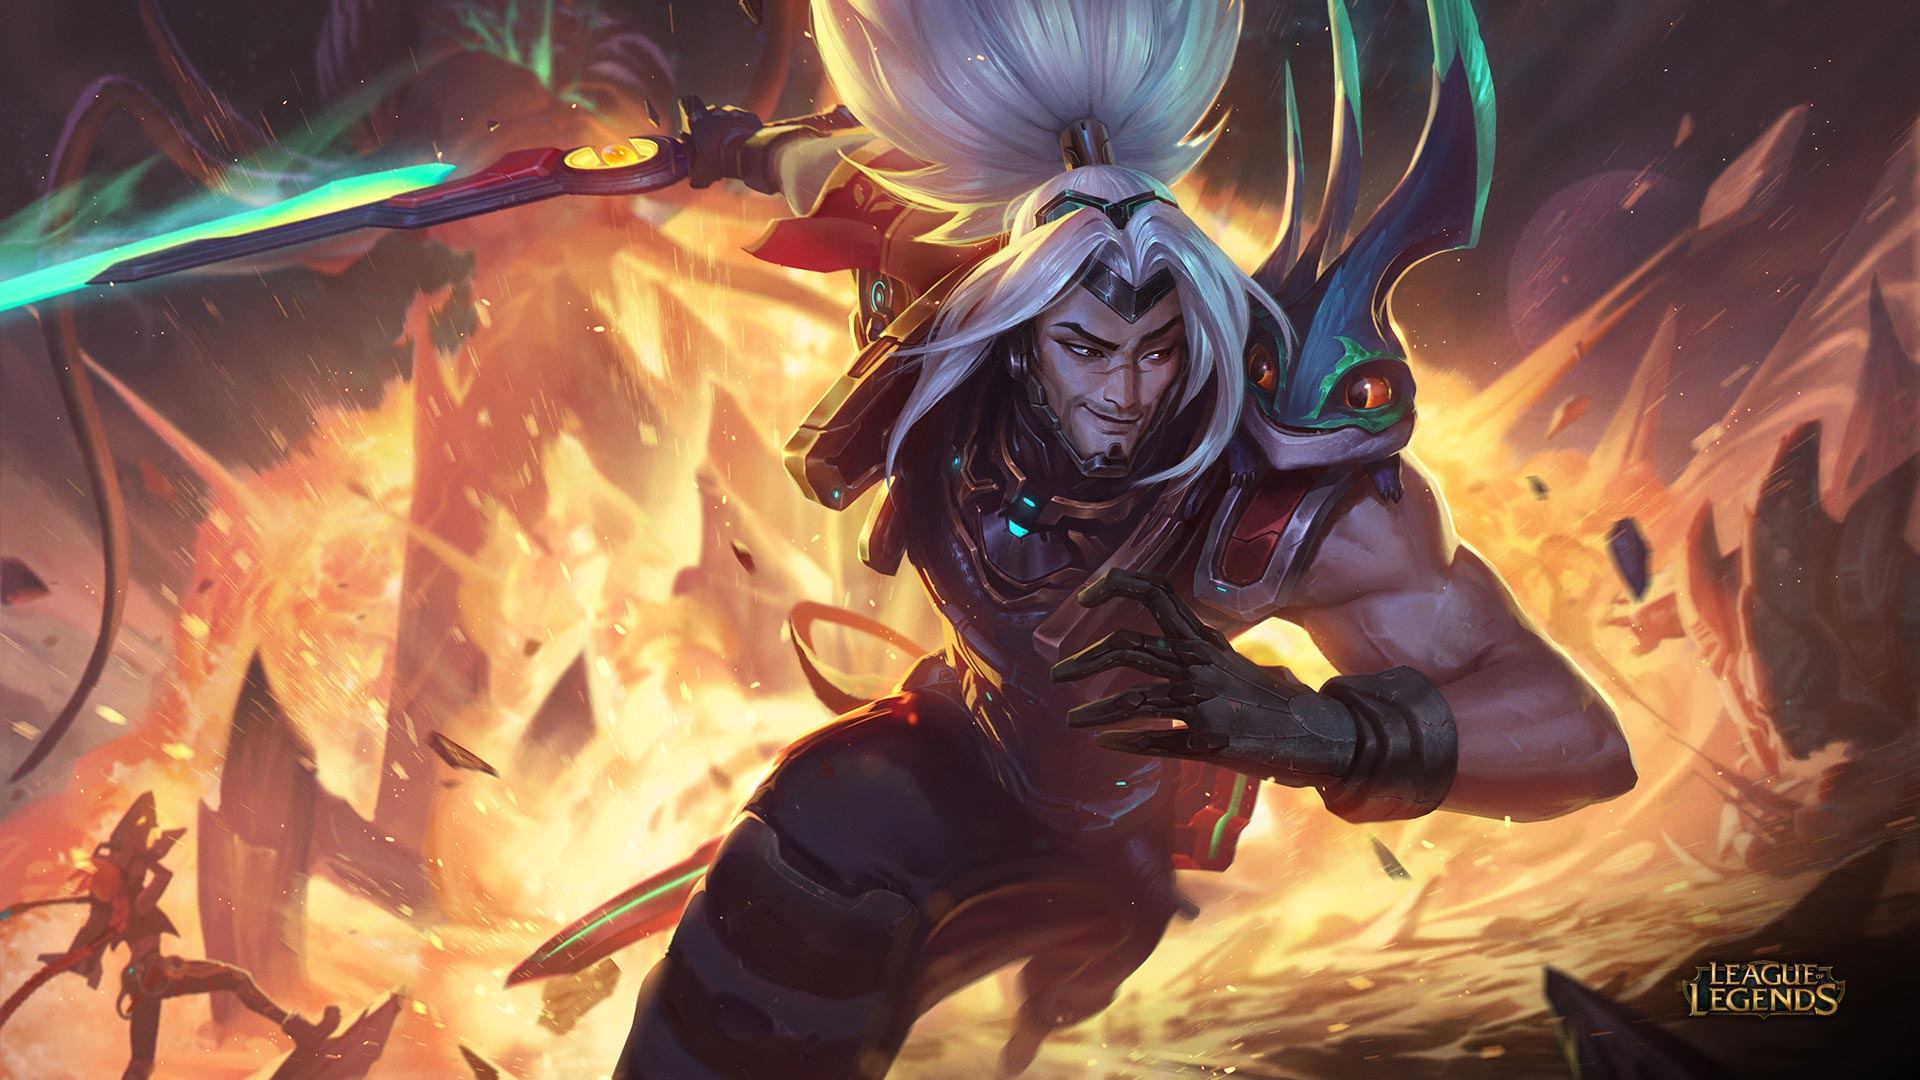 New skin for Yasuo in League of Legends: Odyssey Extraction